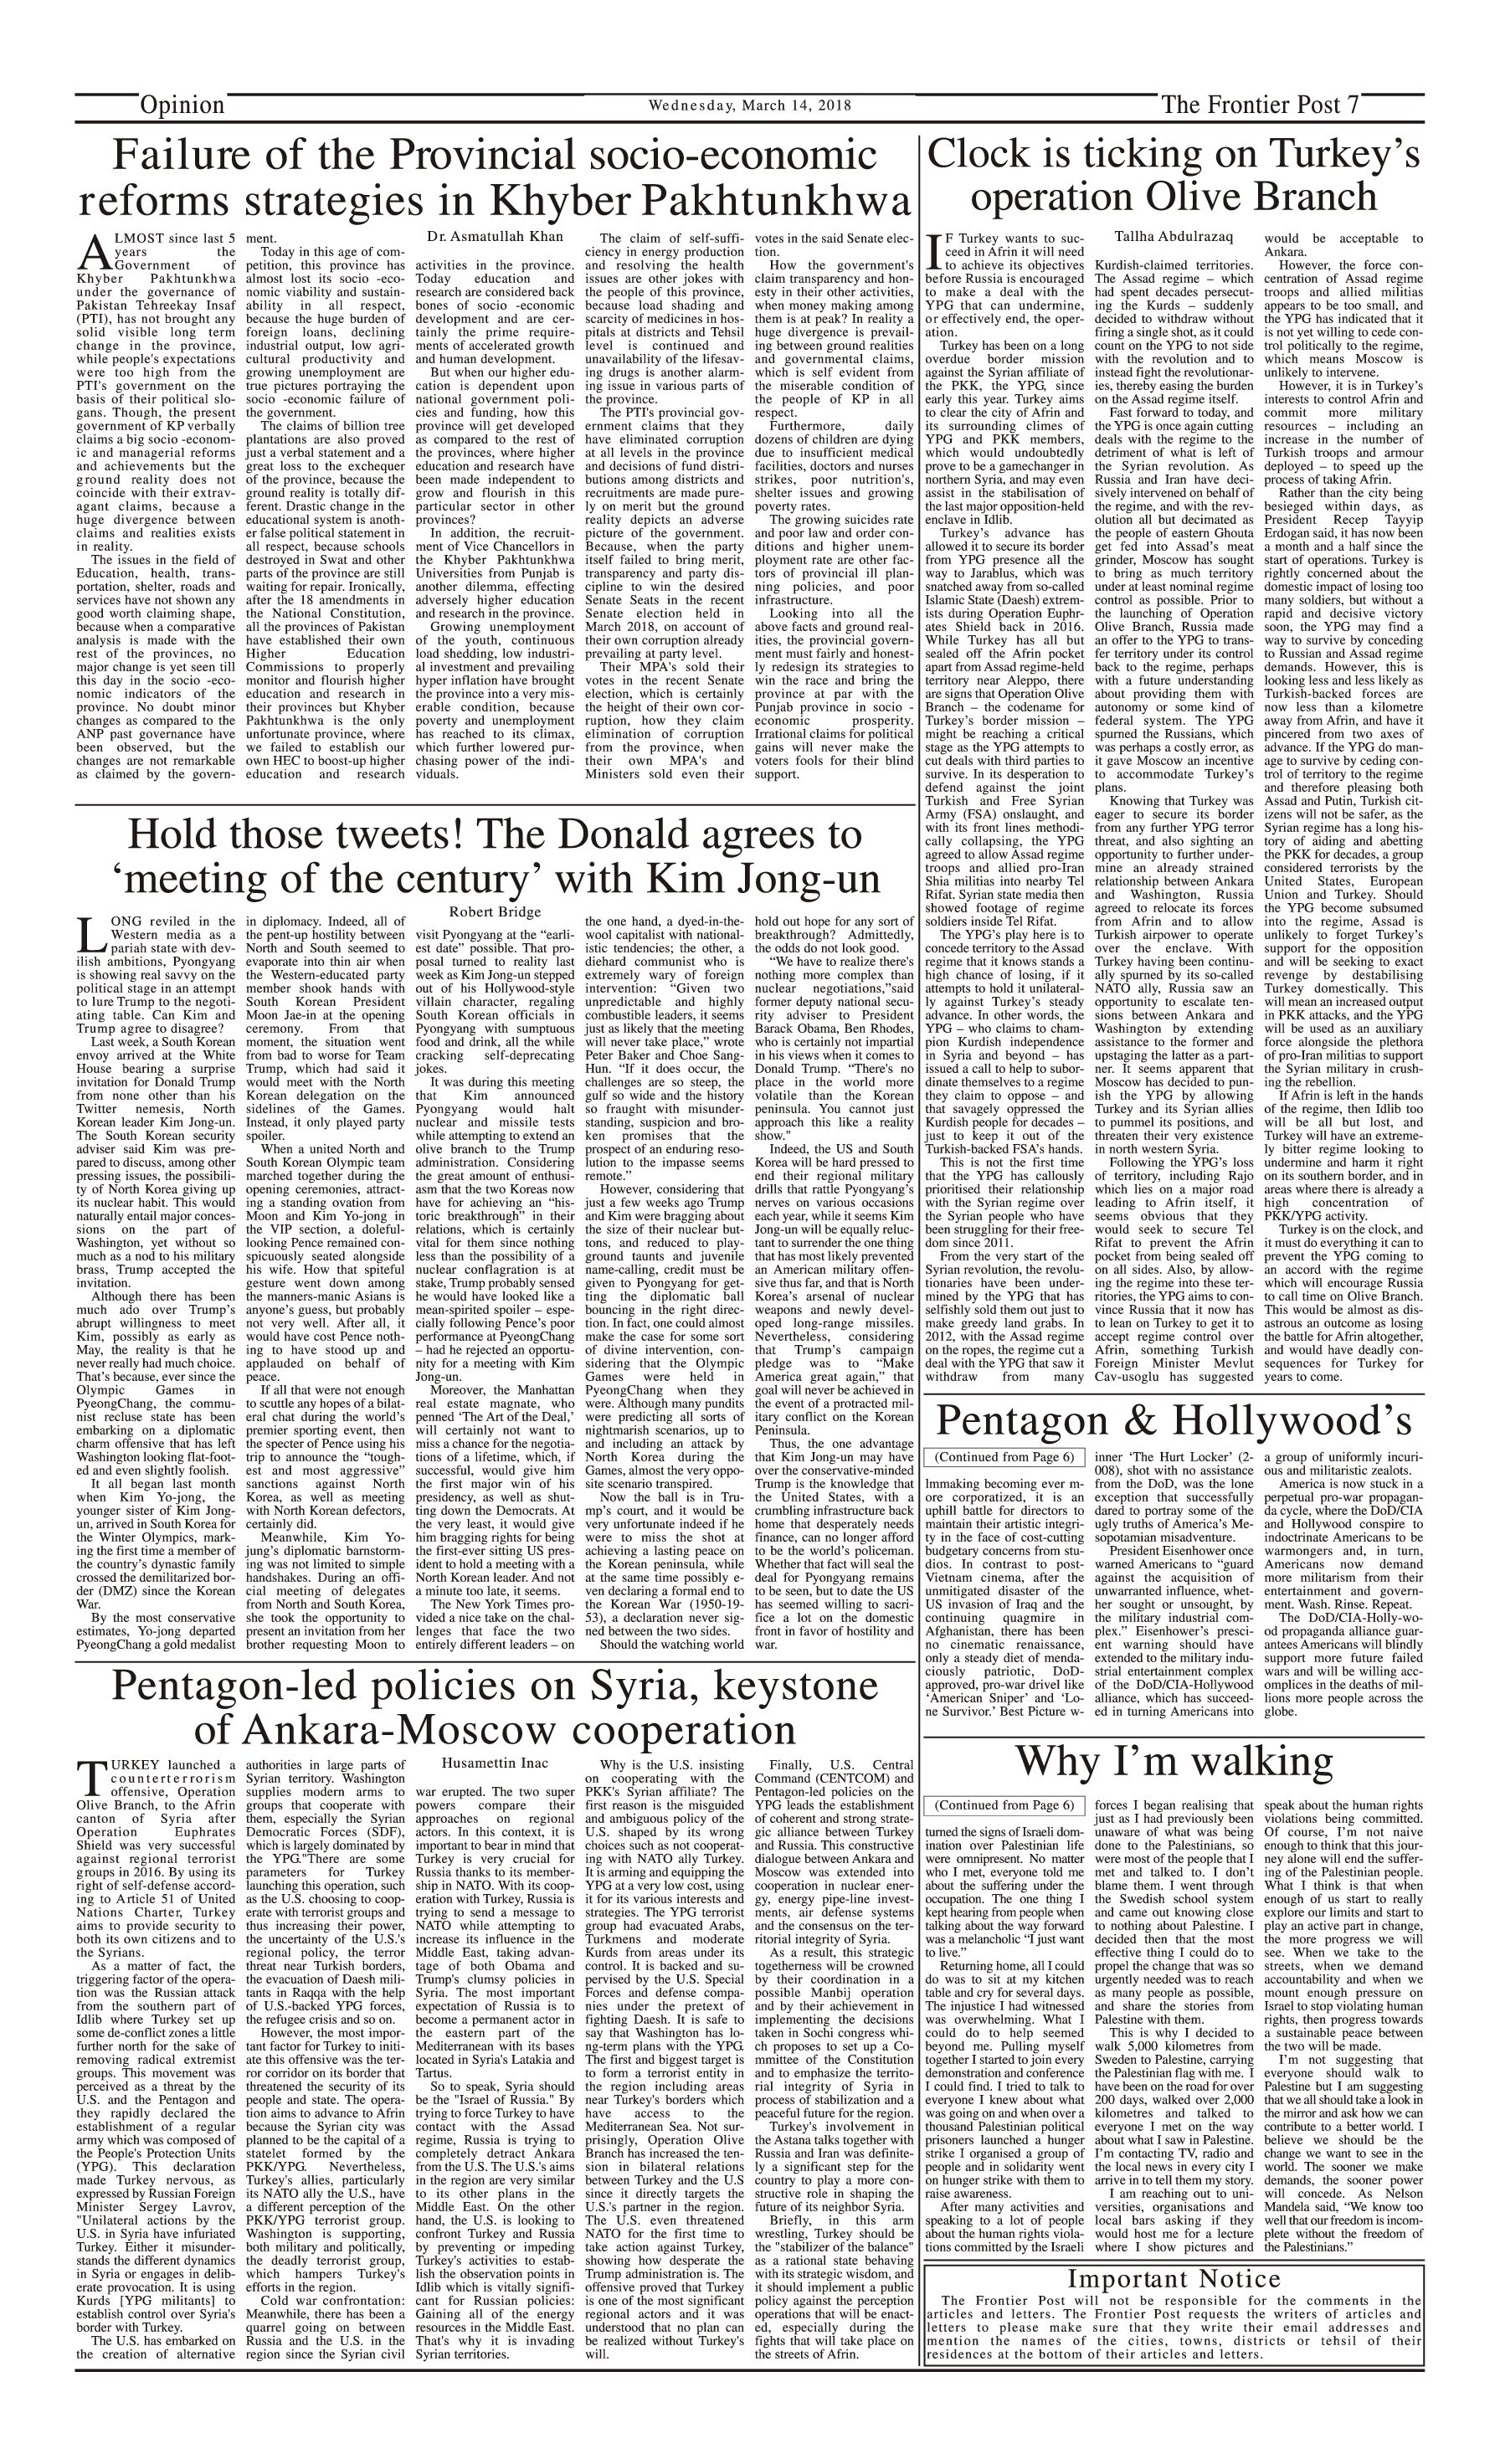 Opinion Page 14-3